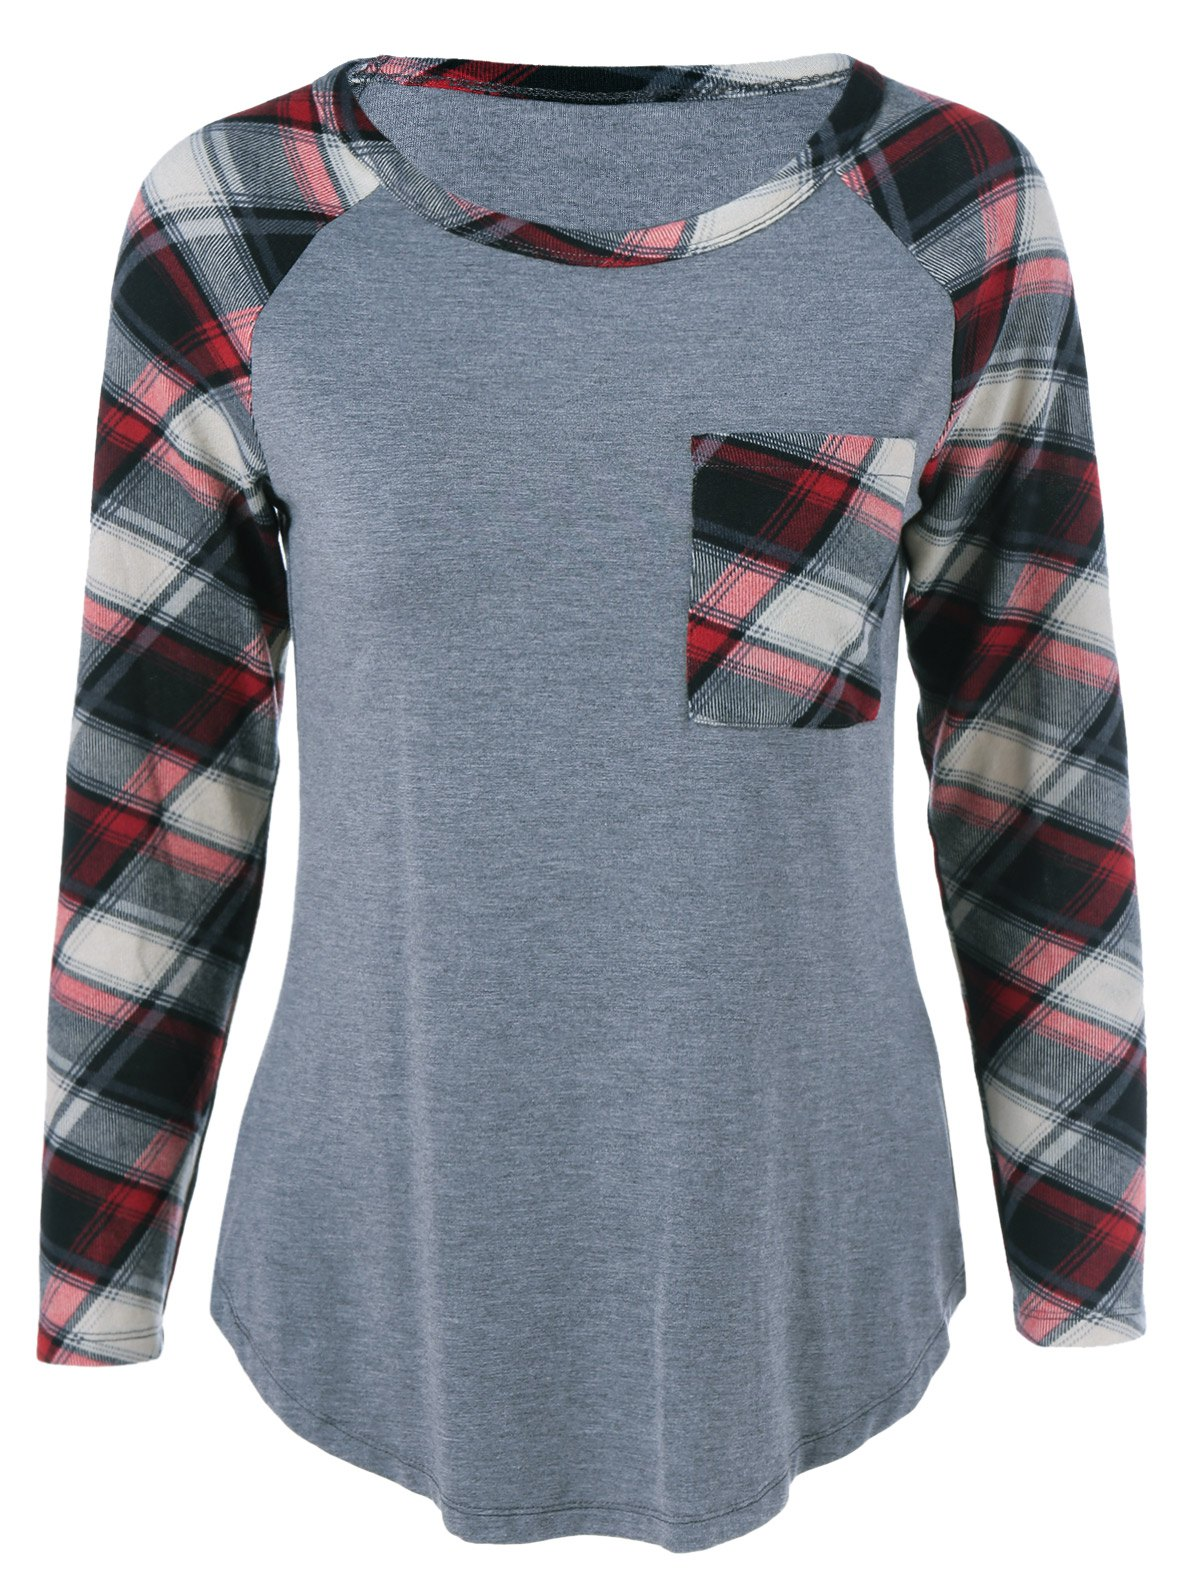 Plus Size One Pocket Plaid Long Sleeve T-ShirtWOMEN<br><br>Size: XL; Color: GRAY; Material: Cotton Blends,Spandex; Shirt Length: Long; Sleeve Length: Full; Collar: Scoop Neck; Style: Casual; Season: Fall,Spring,Summer; Pattern Type: Plaid; Weight: 0.2460kg; Package Contents: 1 x T-Shirt;